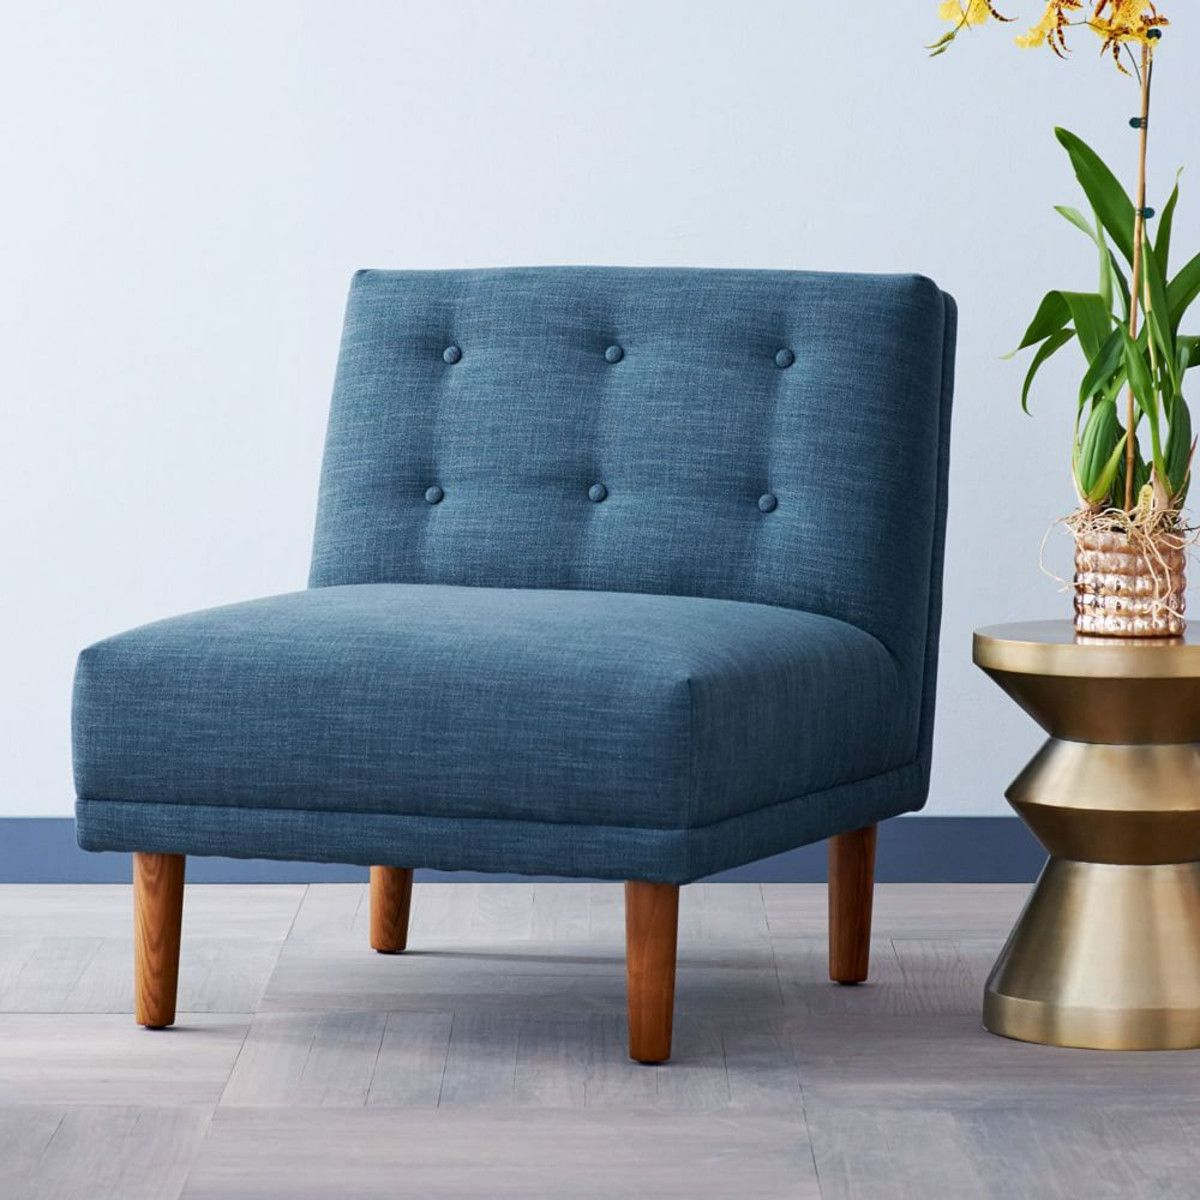 West Elm Chairs: Rounded Retro Armless Chair